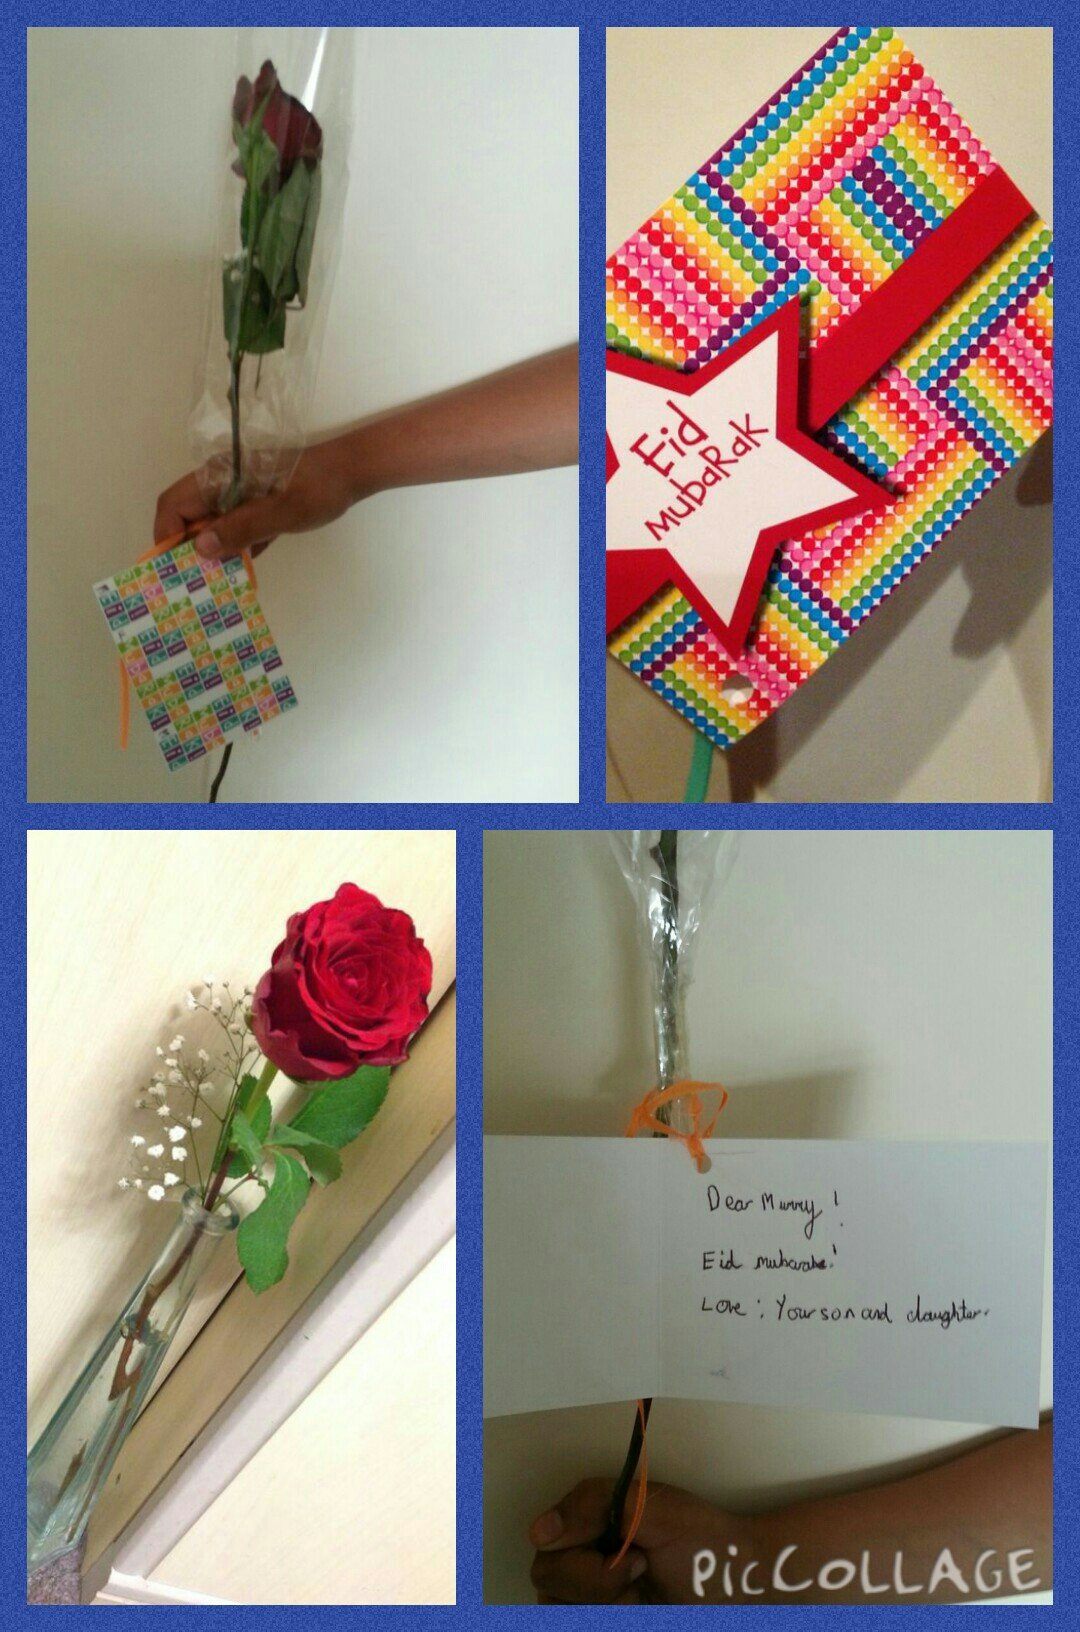 Fundraising idea 21: Buy a rose for your mum on Eid day